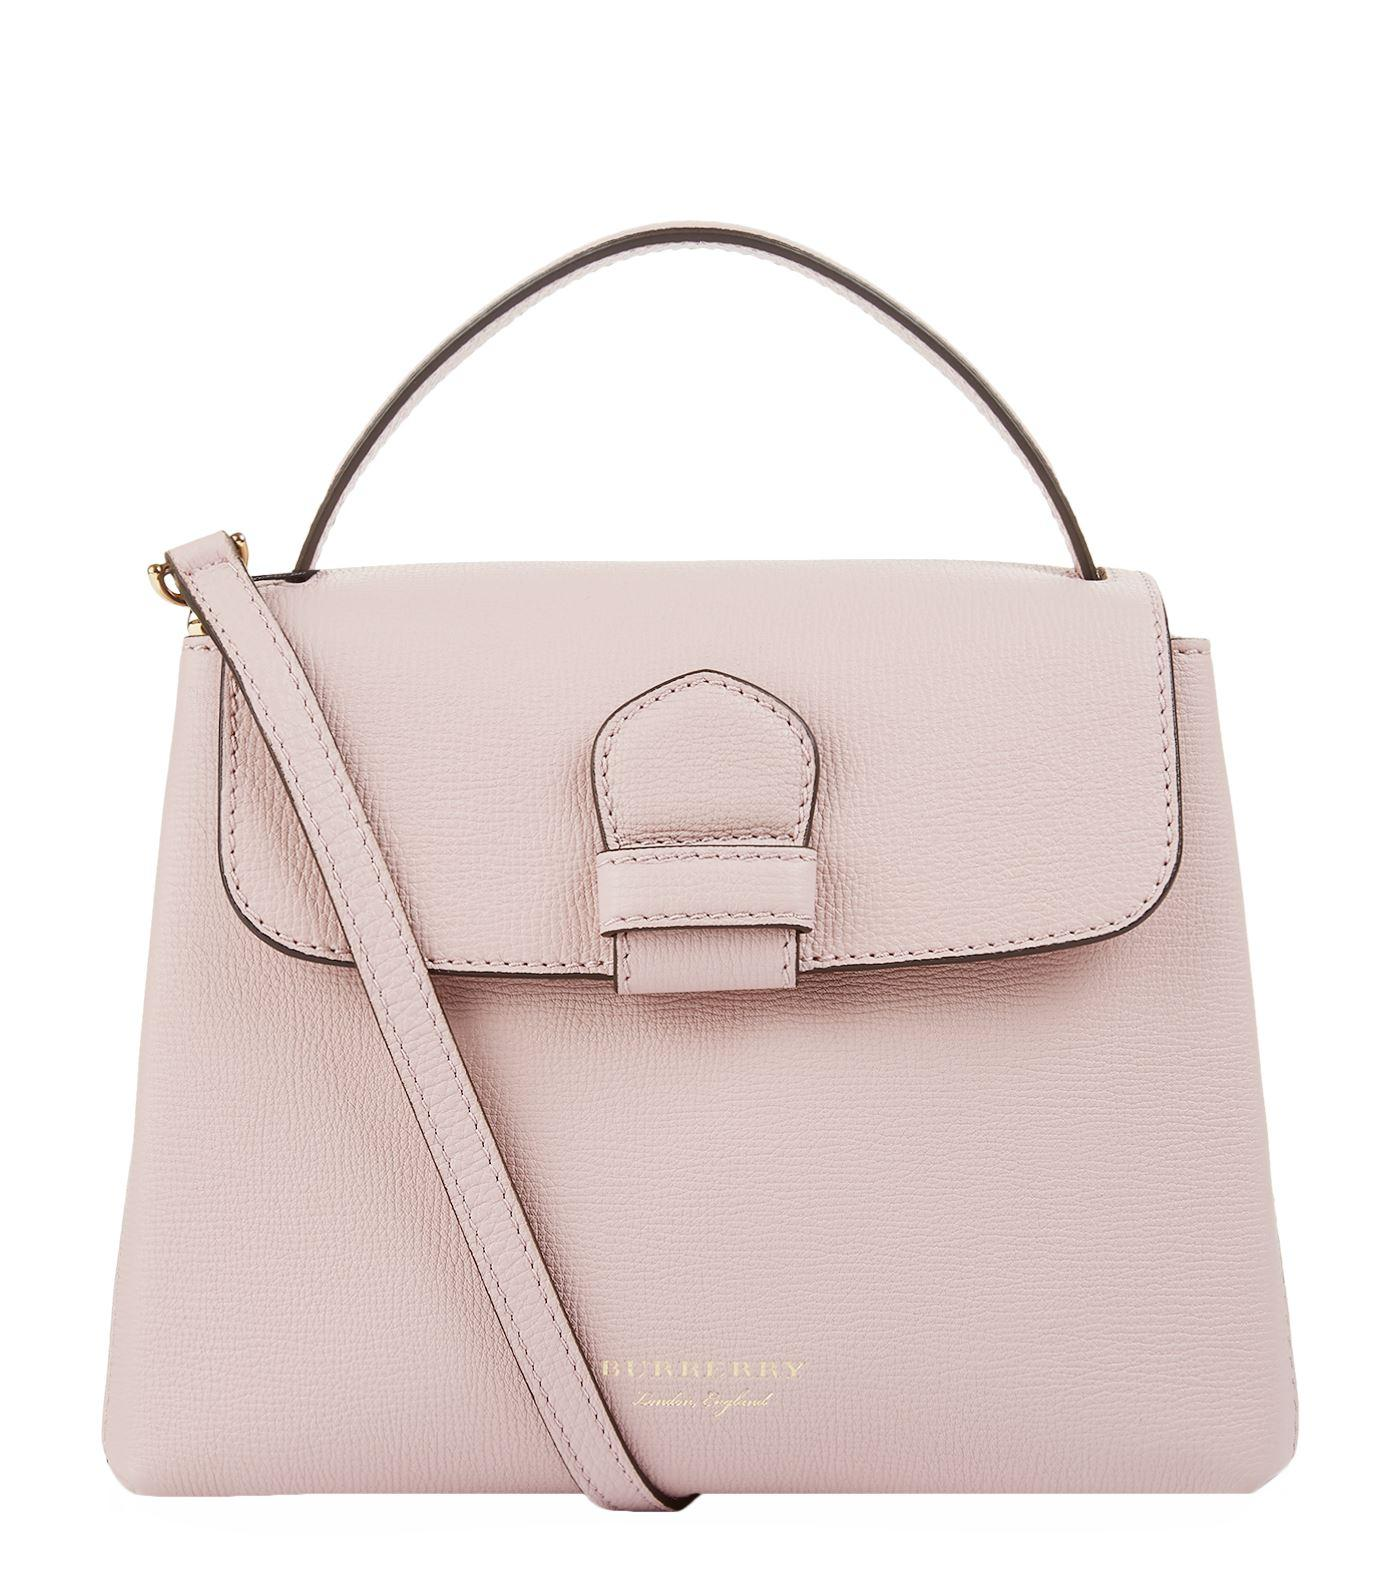 d51b998c0 Burberry Small Grainy Leather And House Check Tote Bag In Pale Orchid